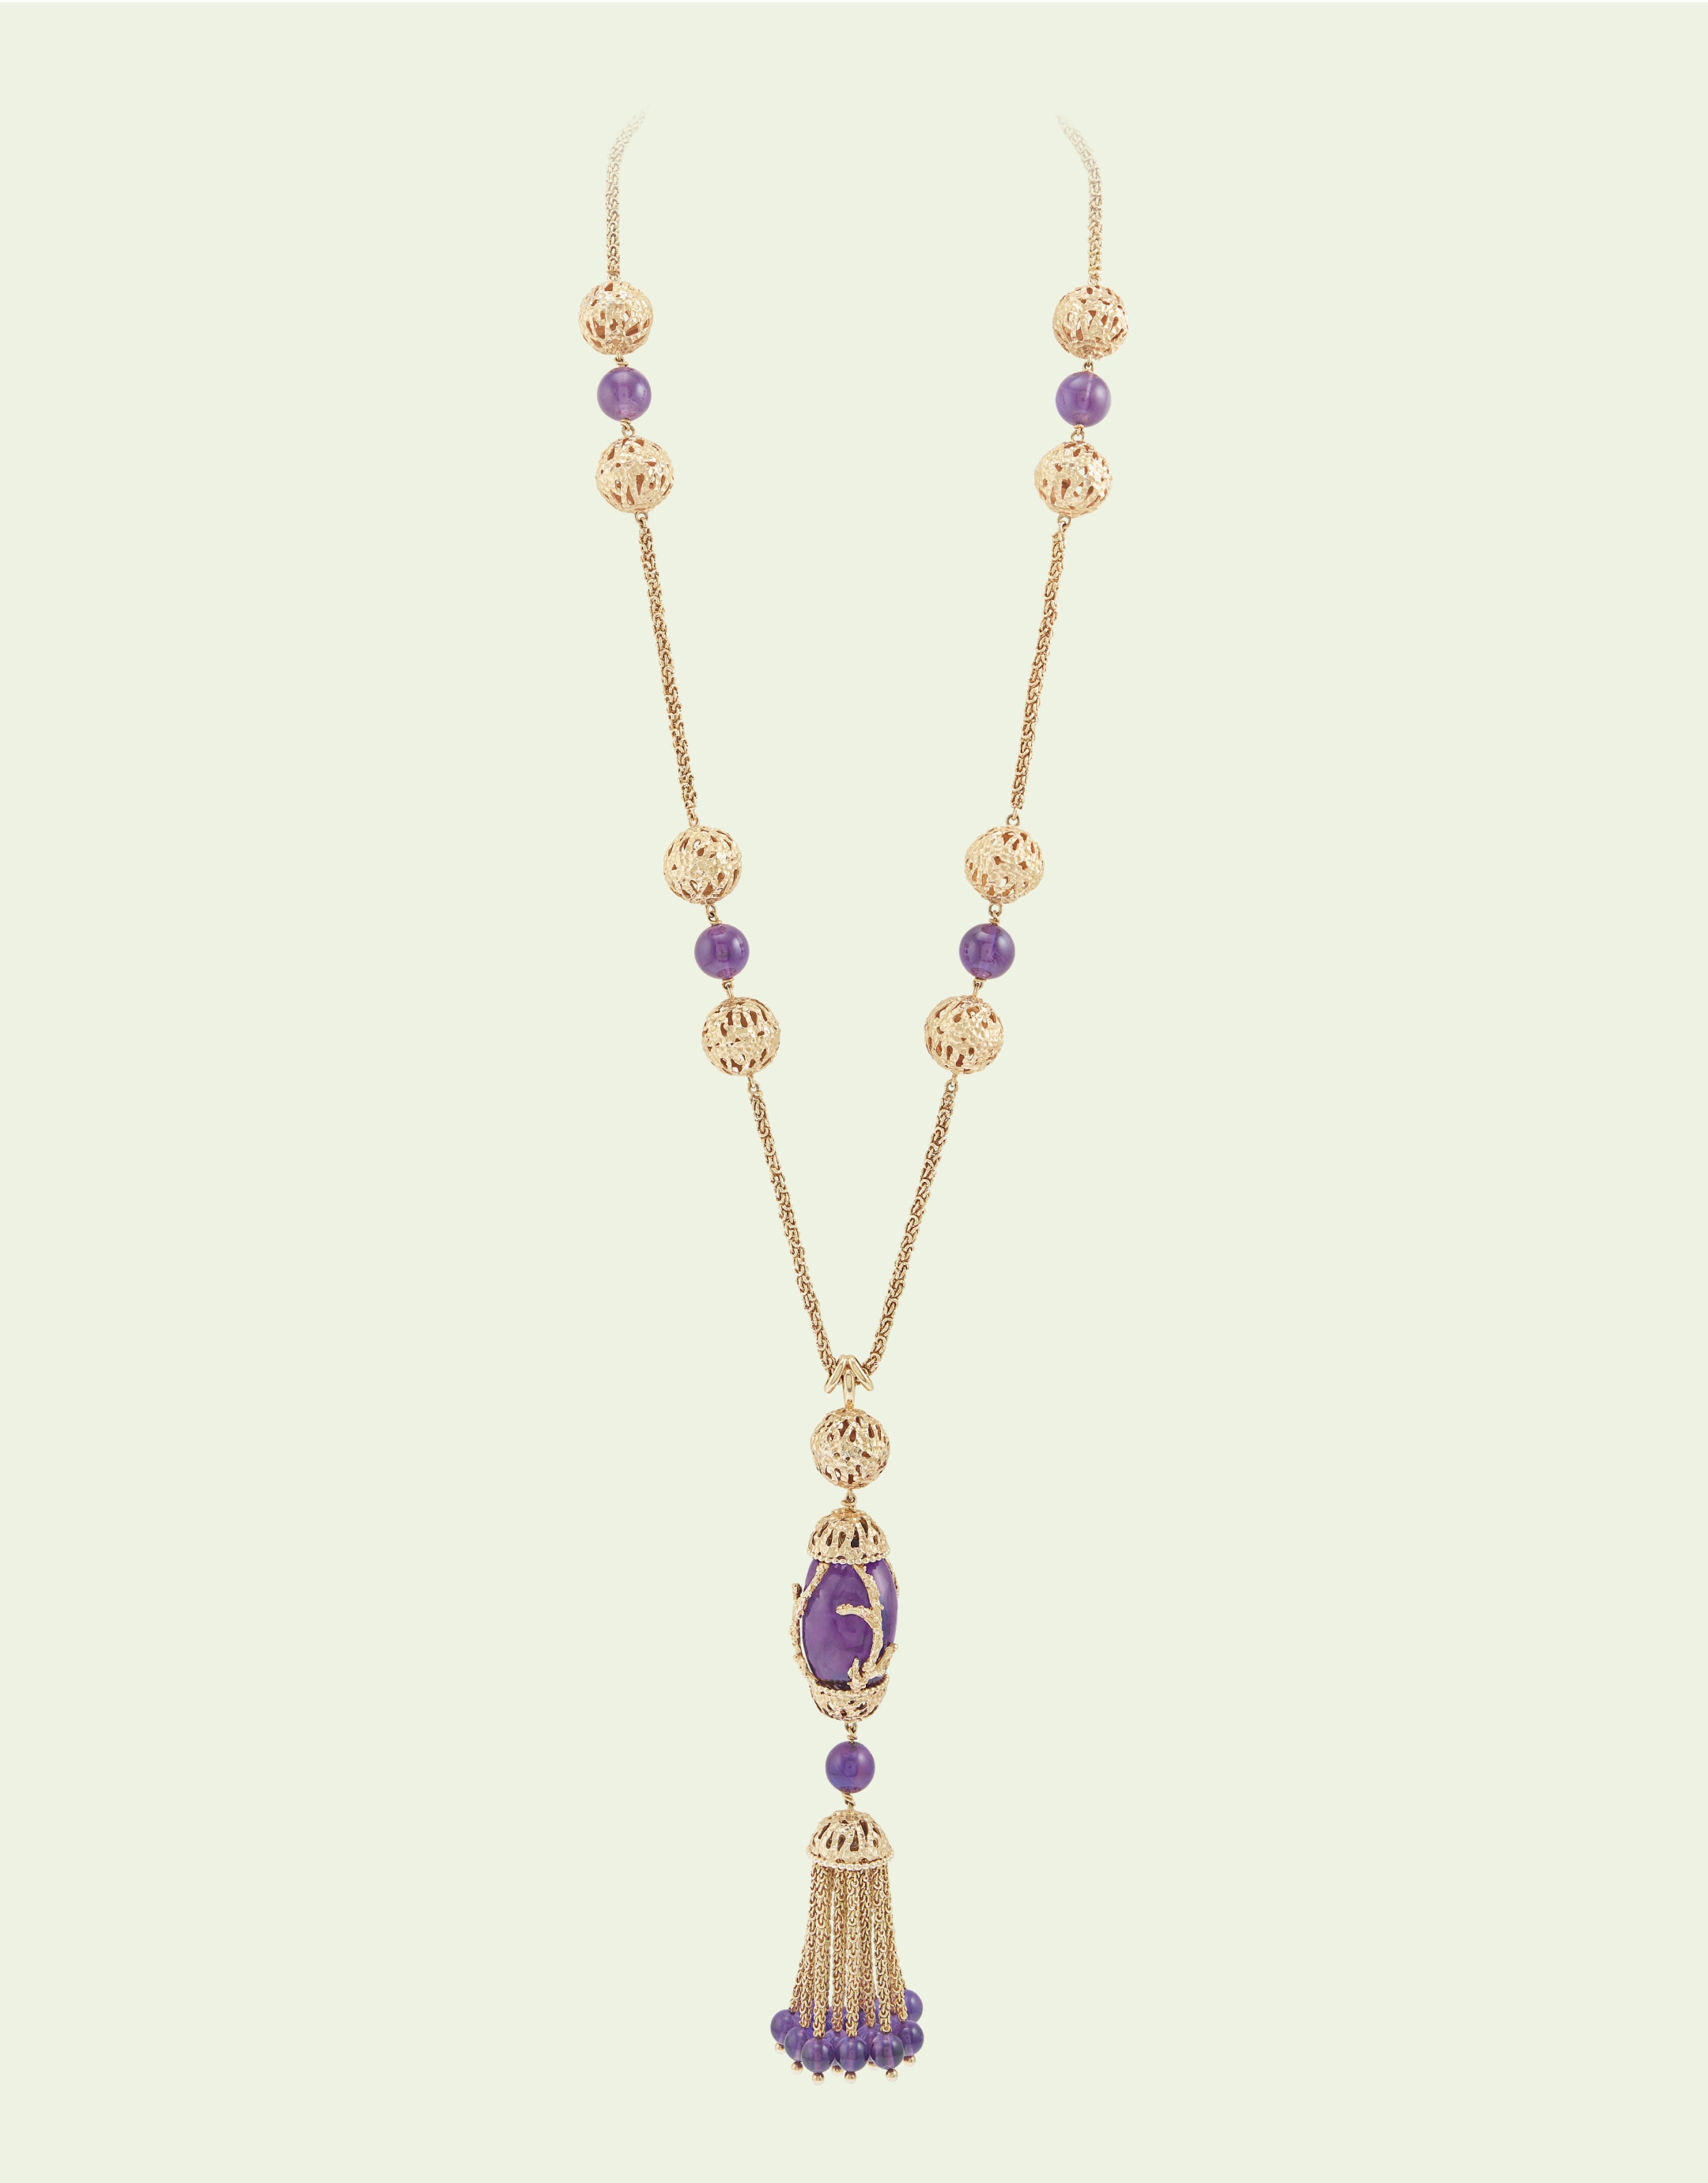 Necklace, 1971, yellow gold, amethysts. Van Cleef & Arpels Collection.